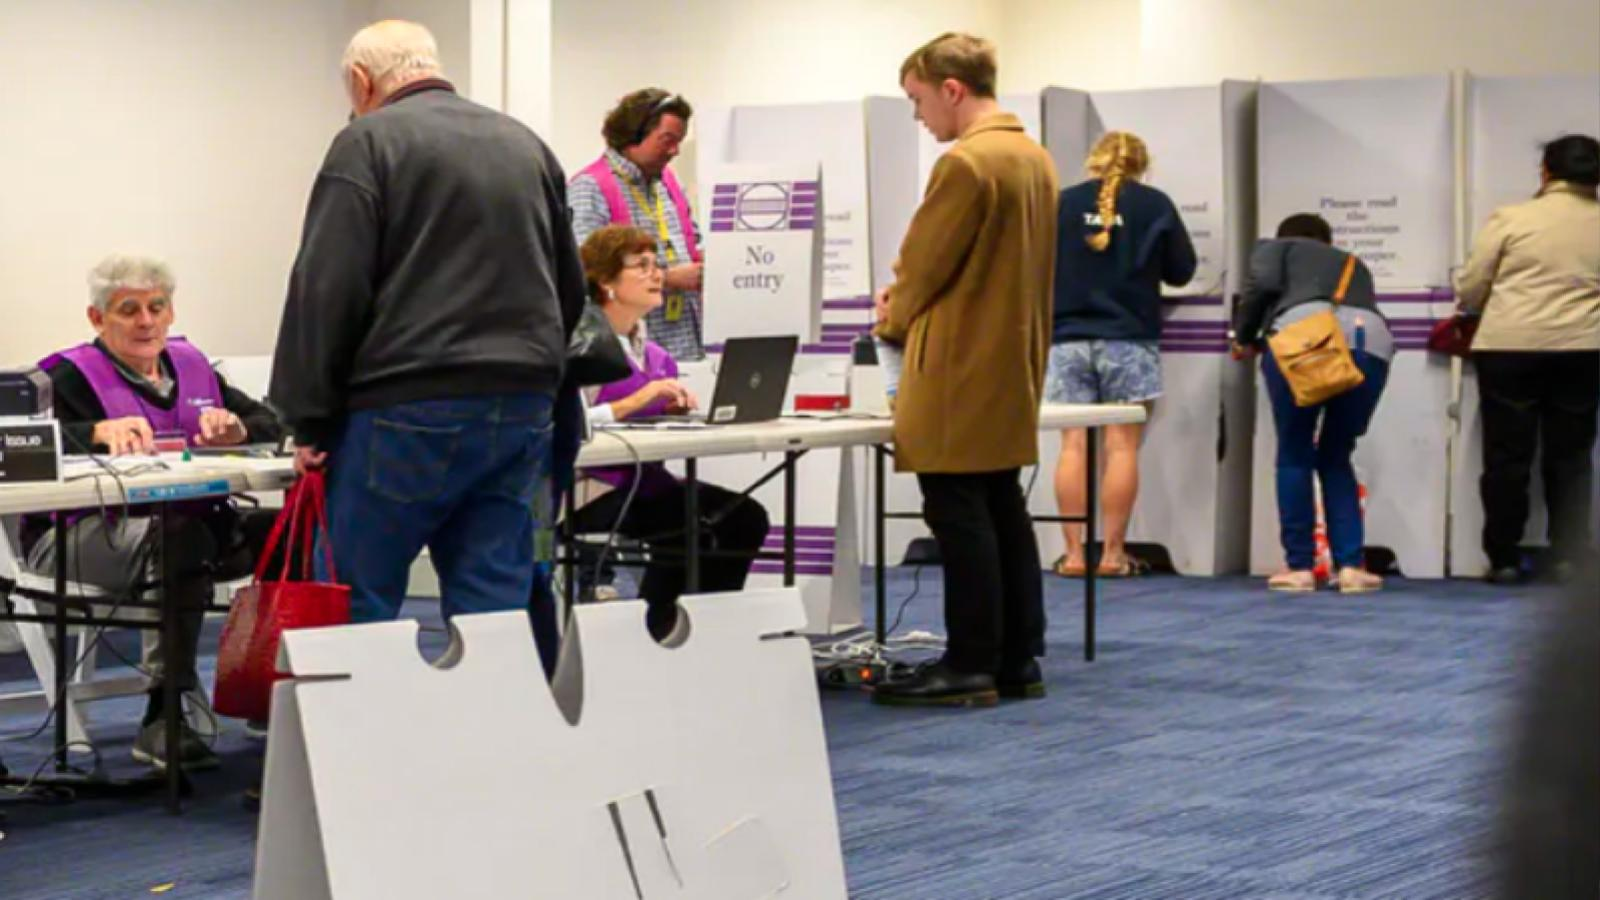 Australia boosts voter turnout